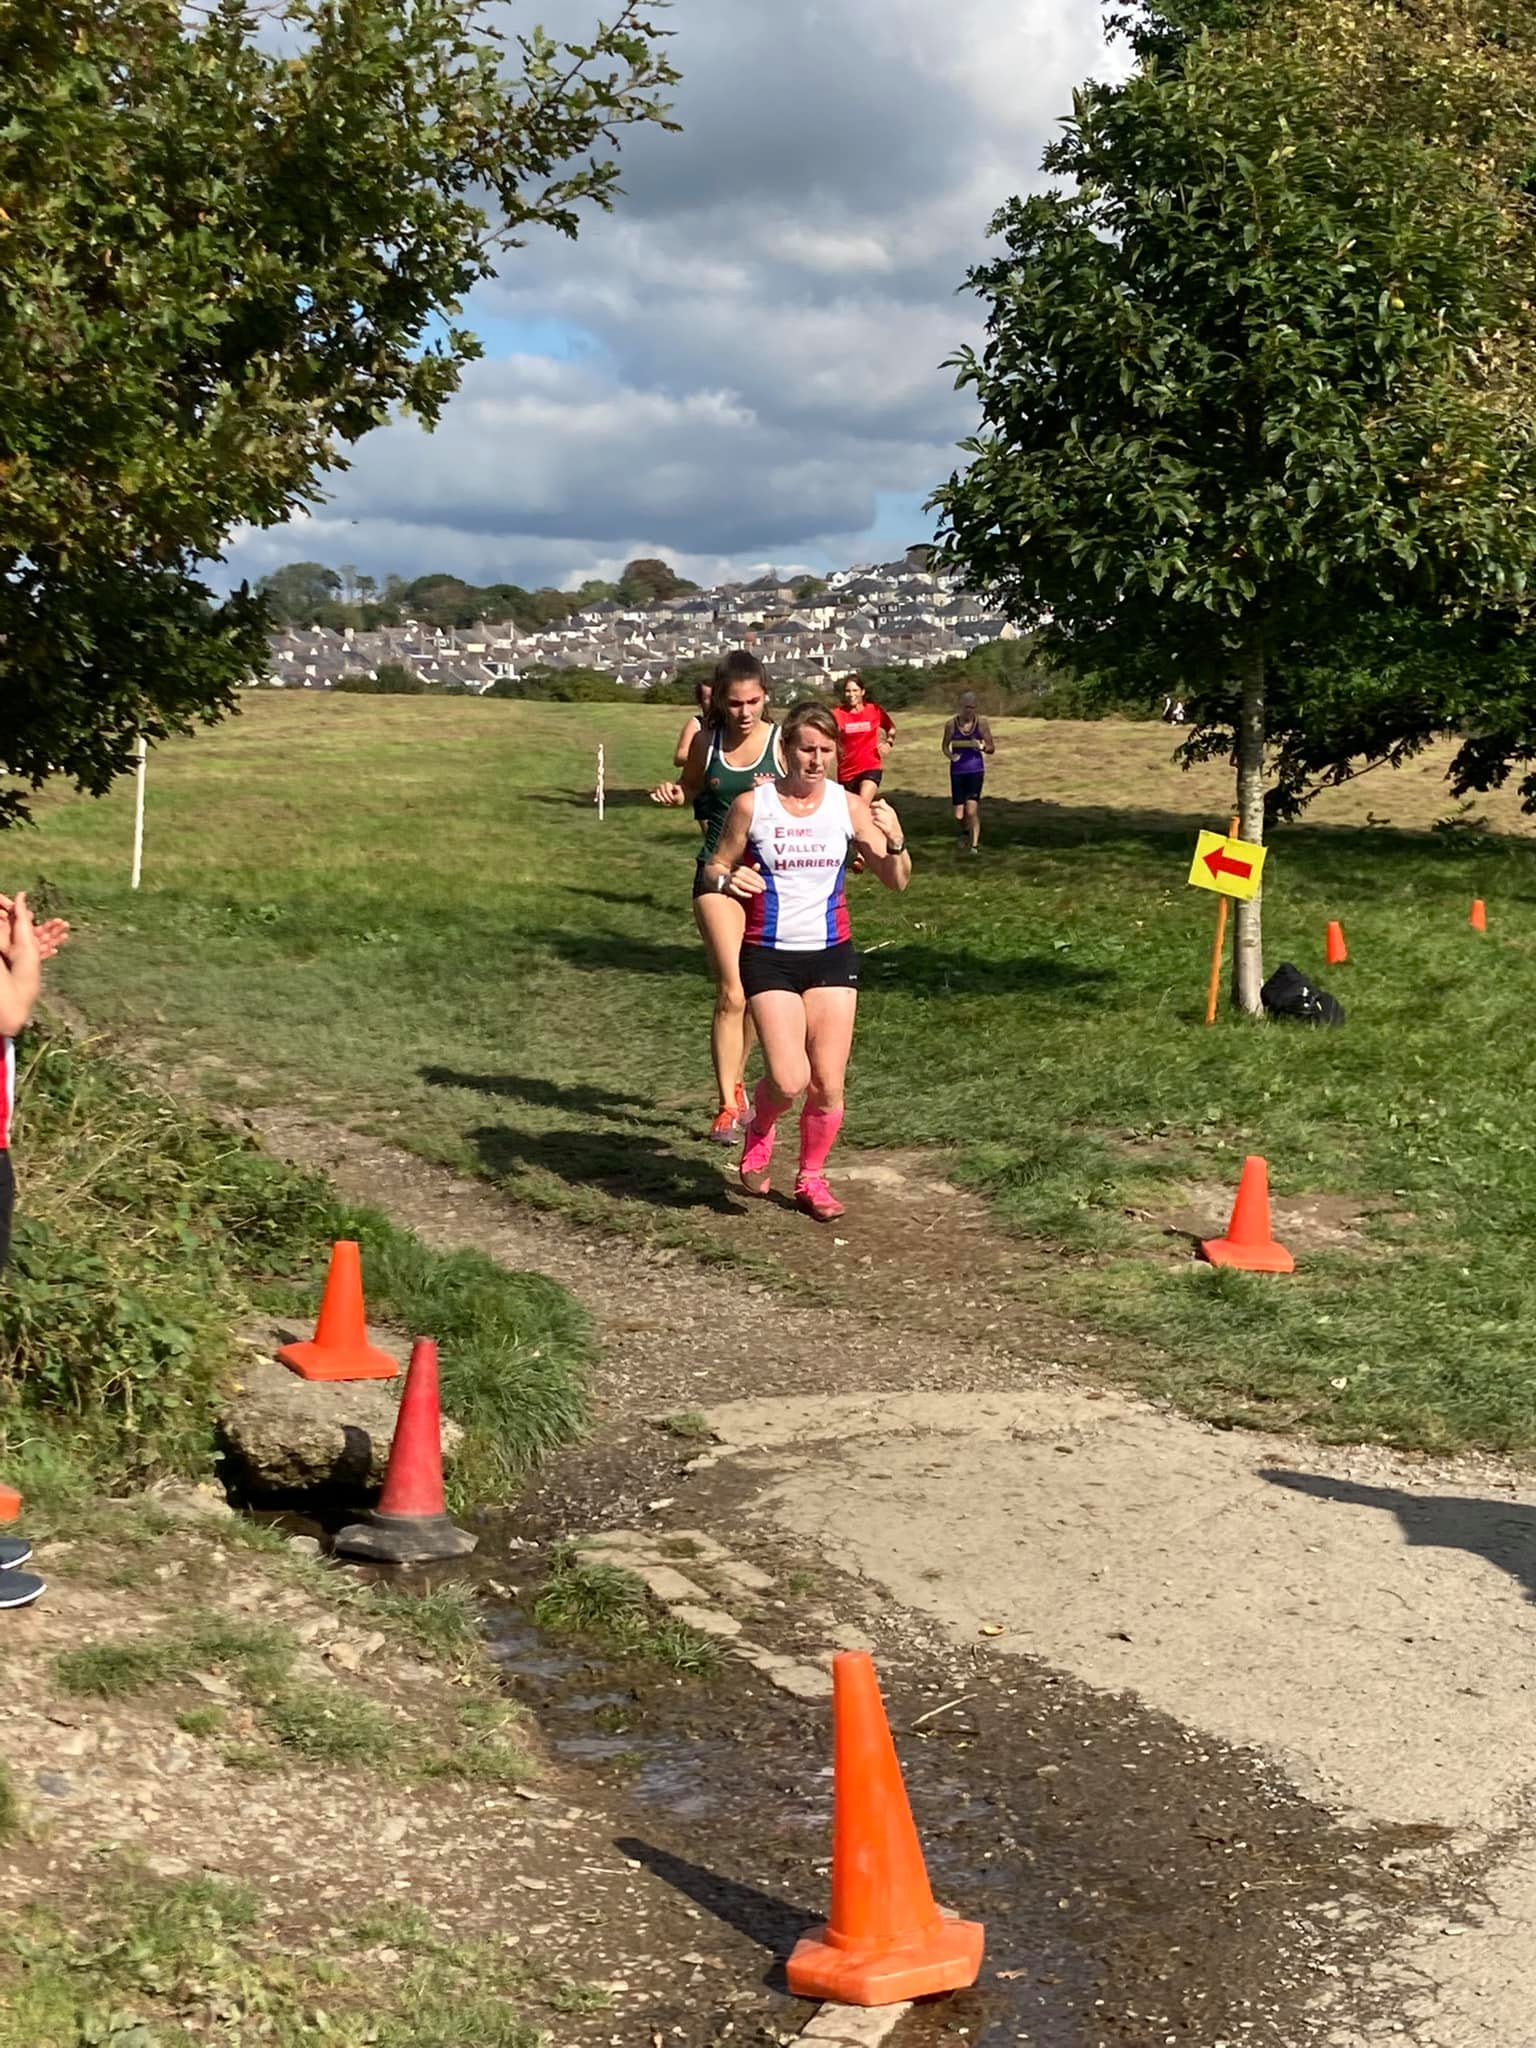 The Westward Cross Country League makes a welcome return